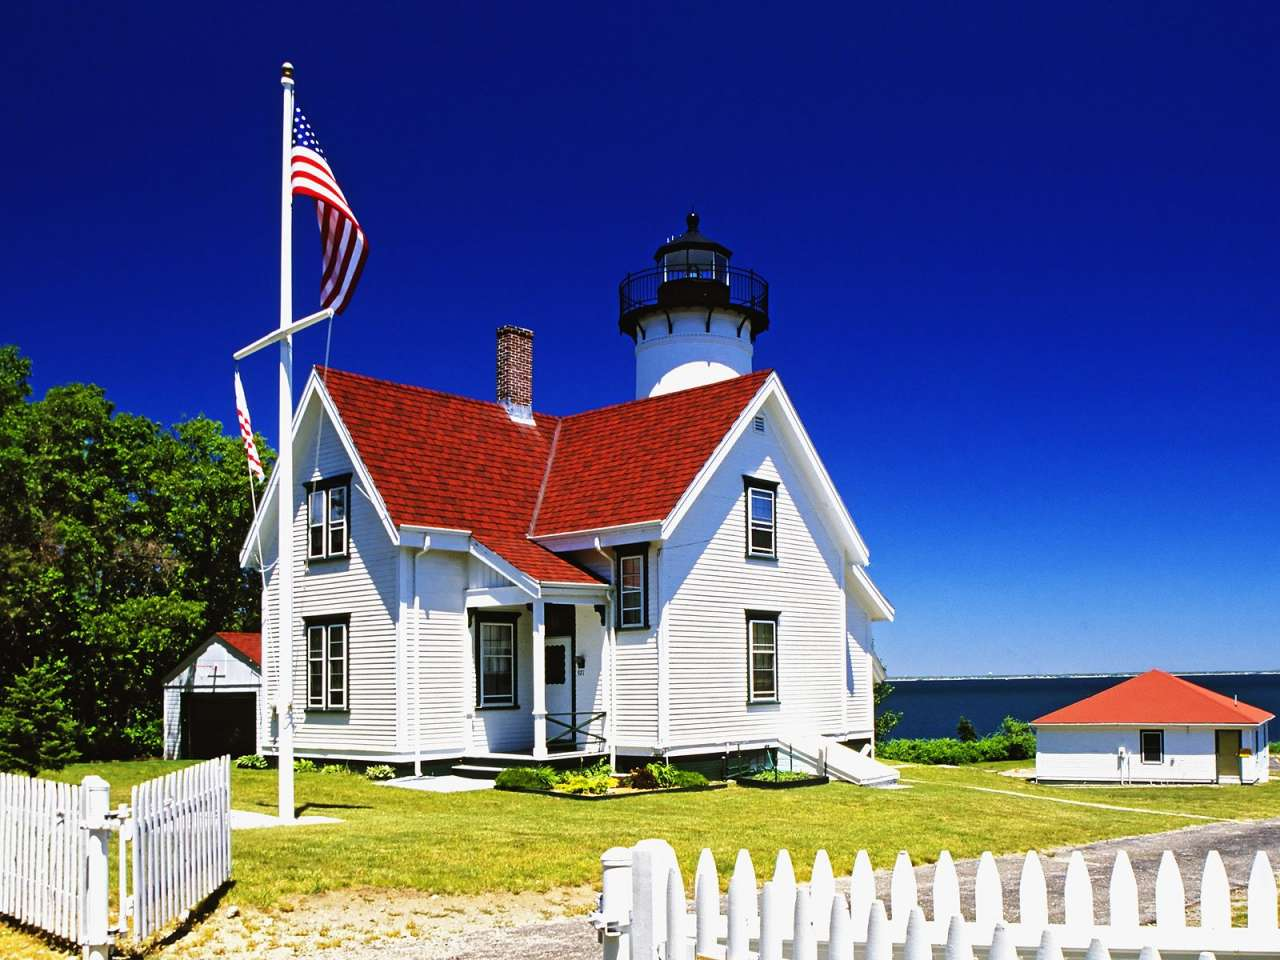 West Chop Lighthouse, Tisbury, Martha's Vineyard, Massachuse